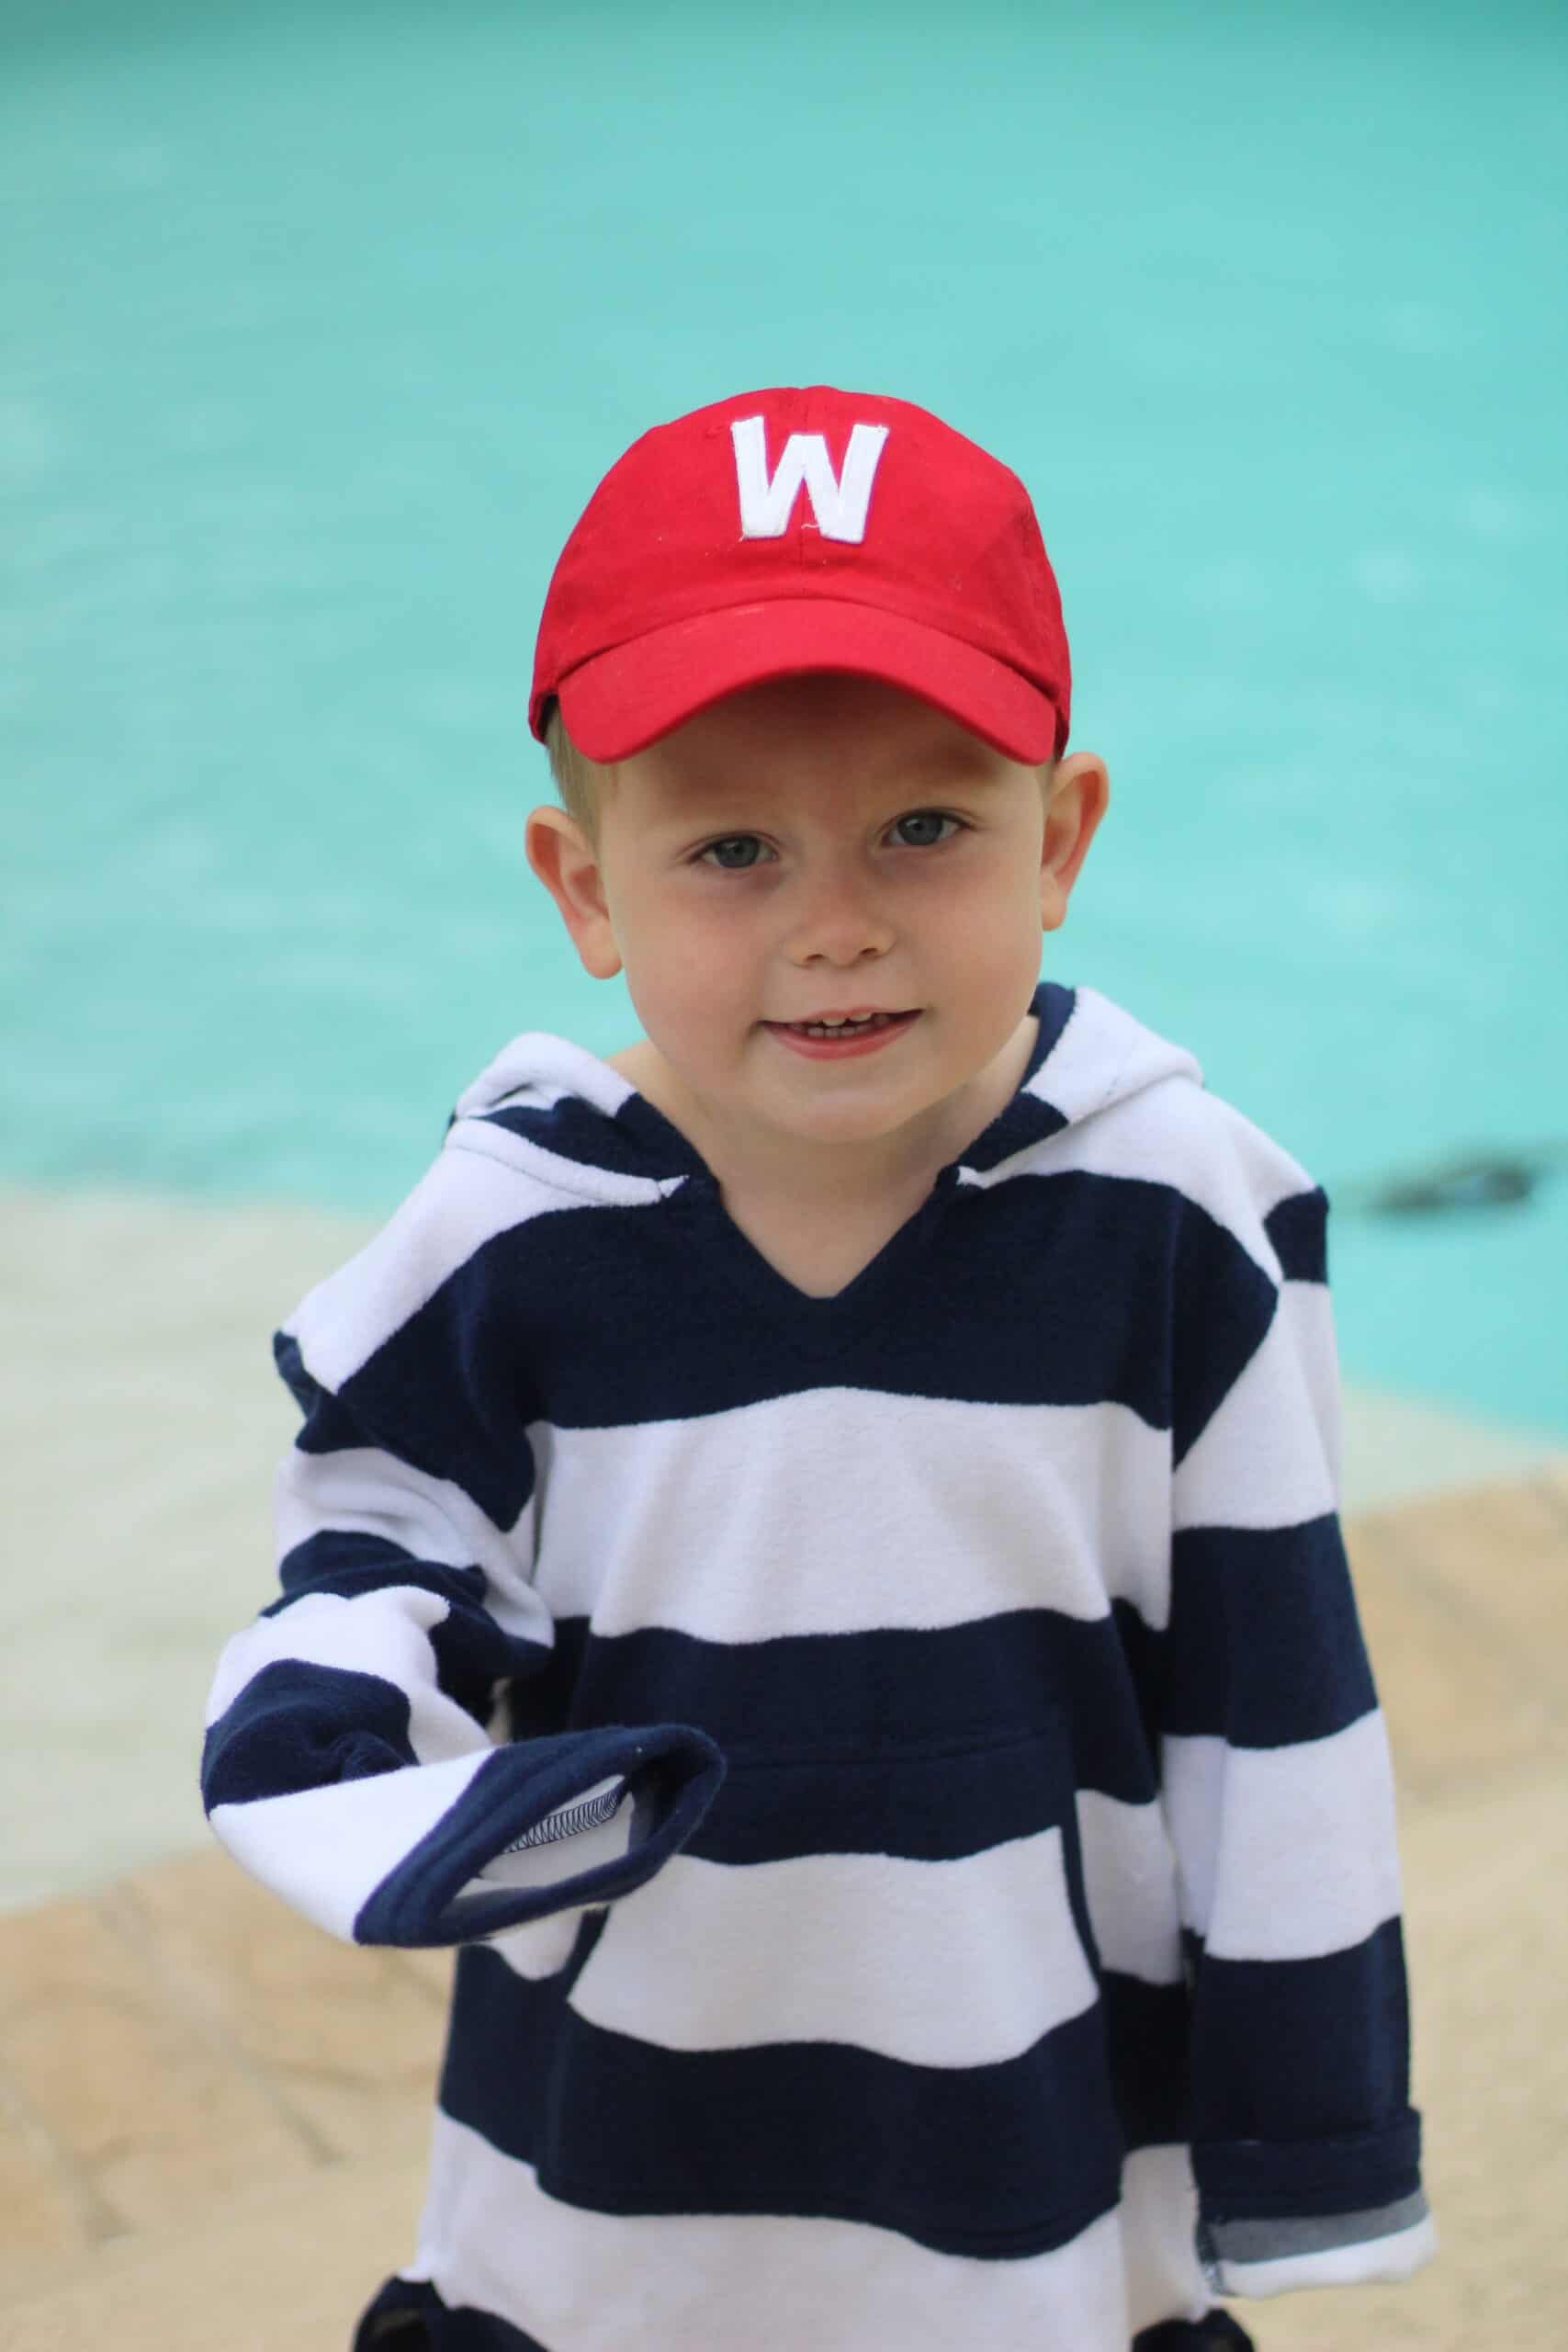 three year old boy in W hat